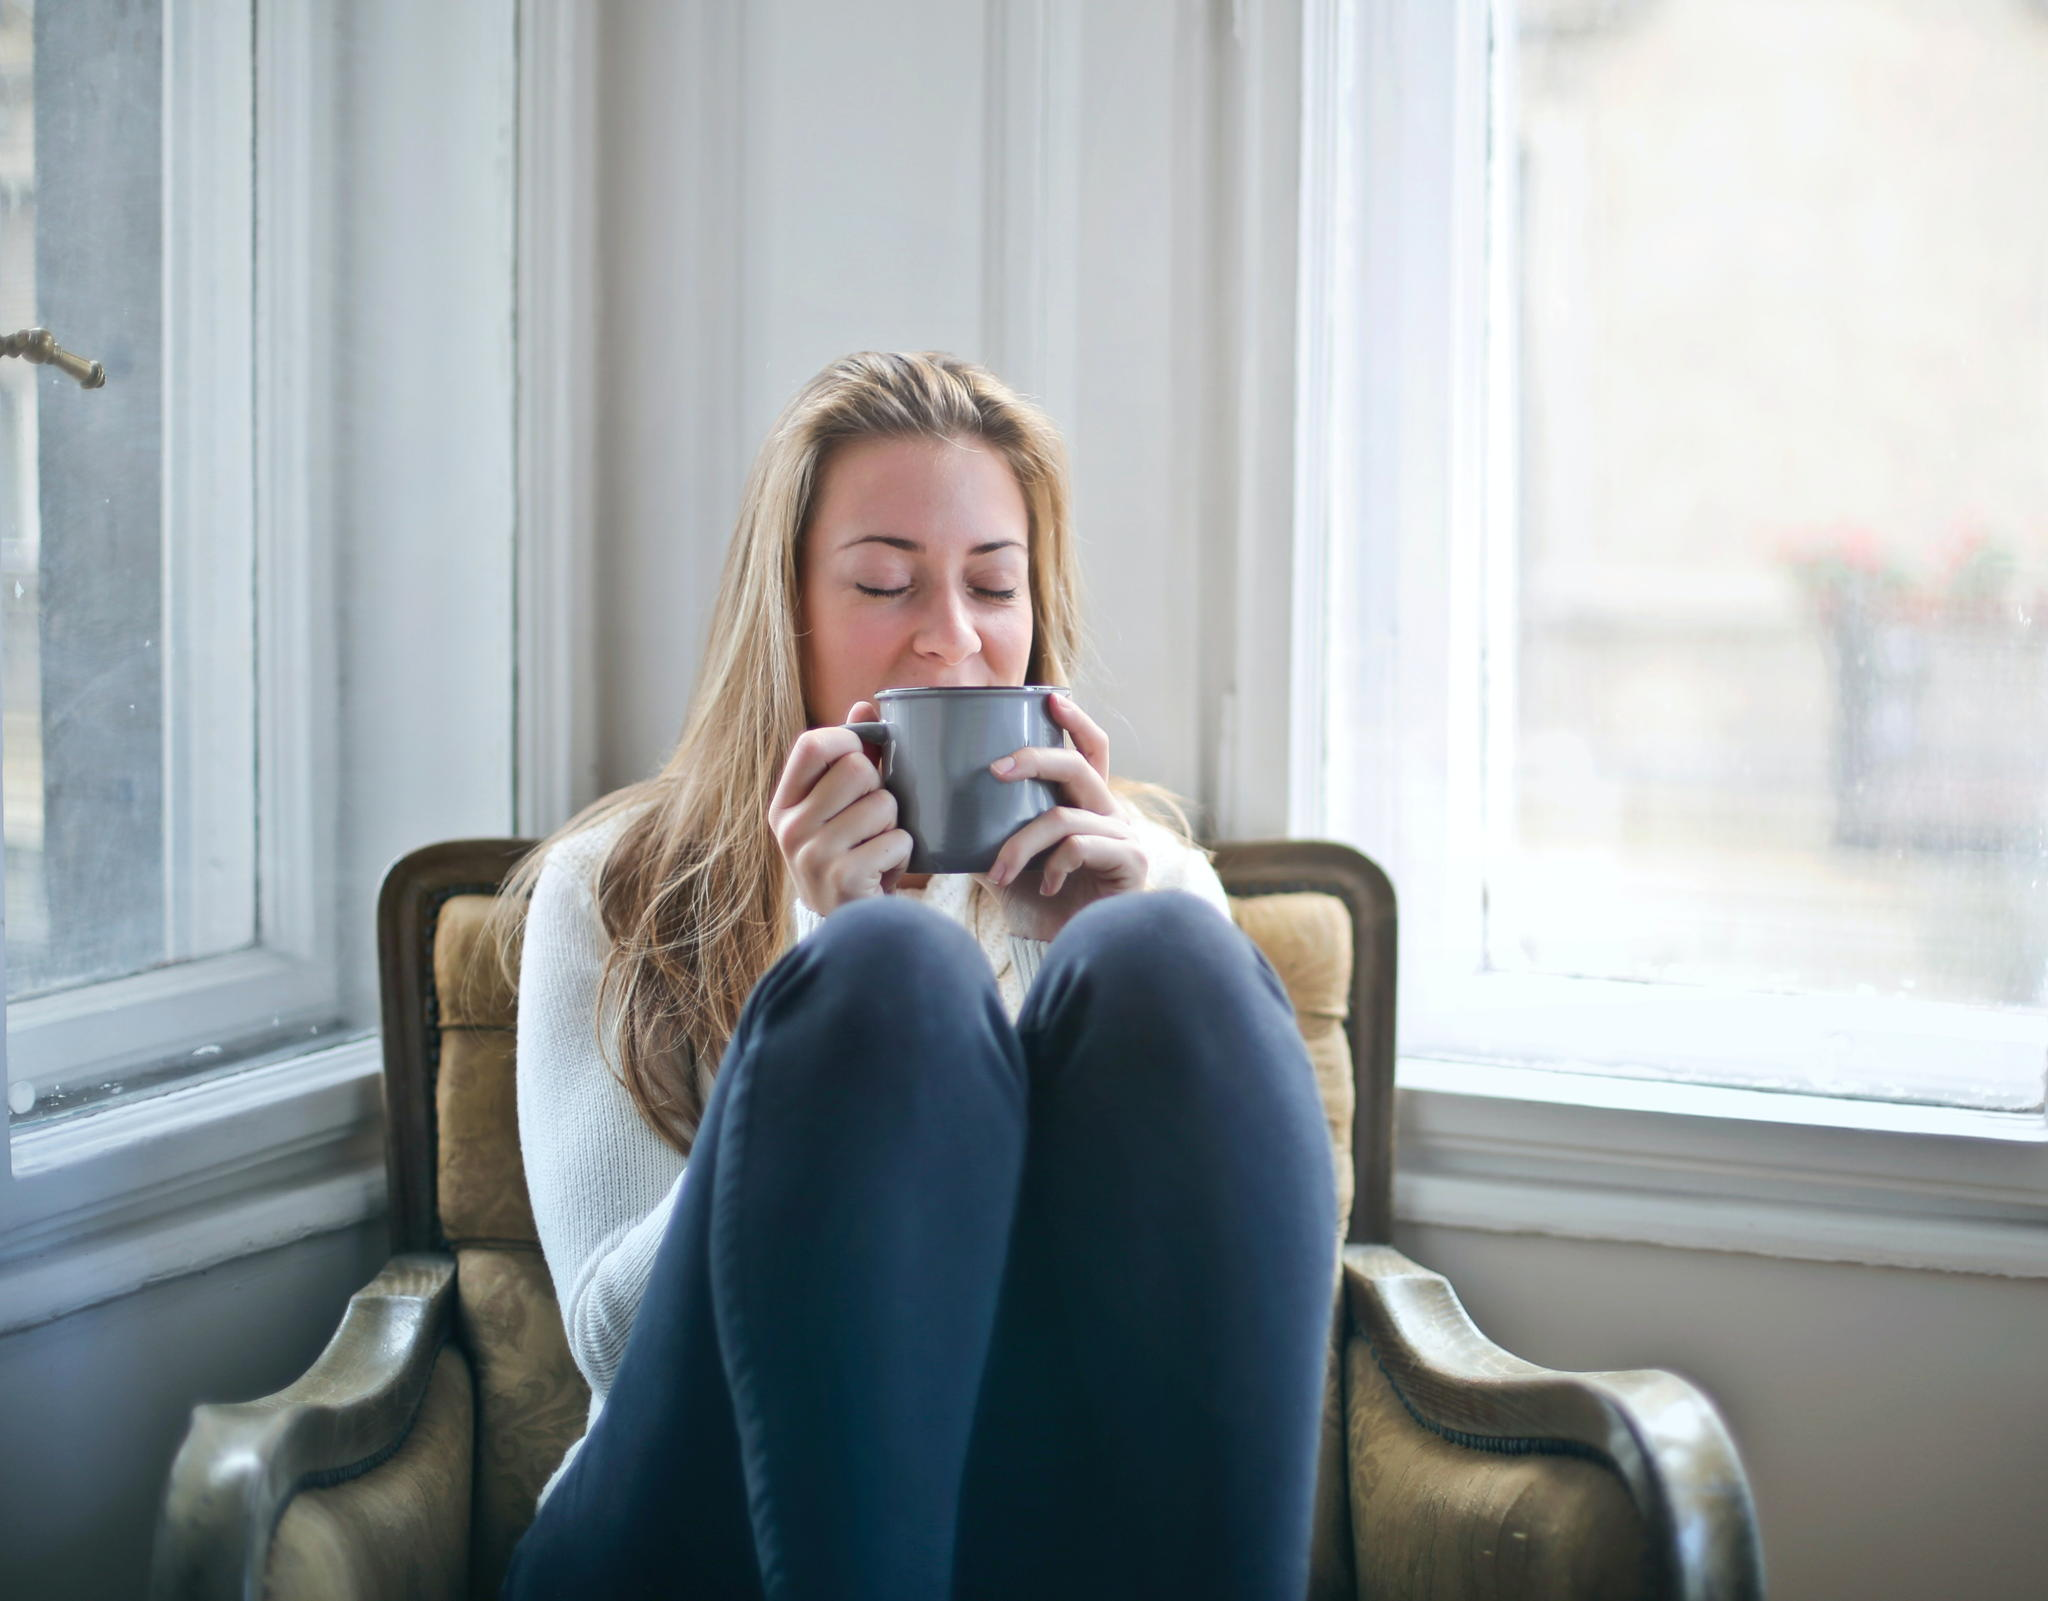 A blond haired woman is sitting with her knees up on a chair with a coffee mug close to her nose.